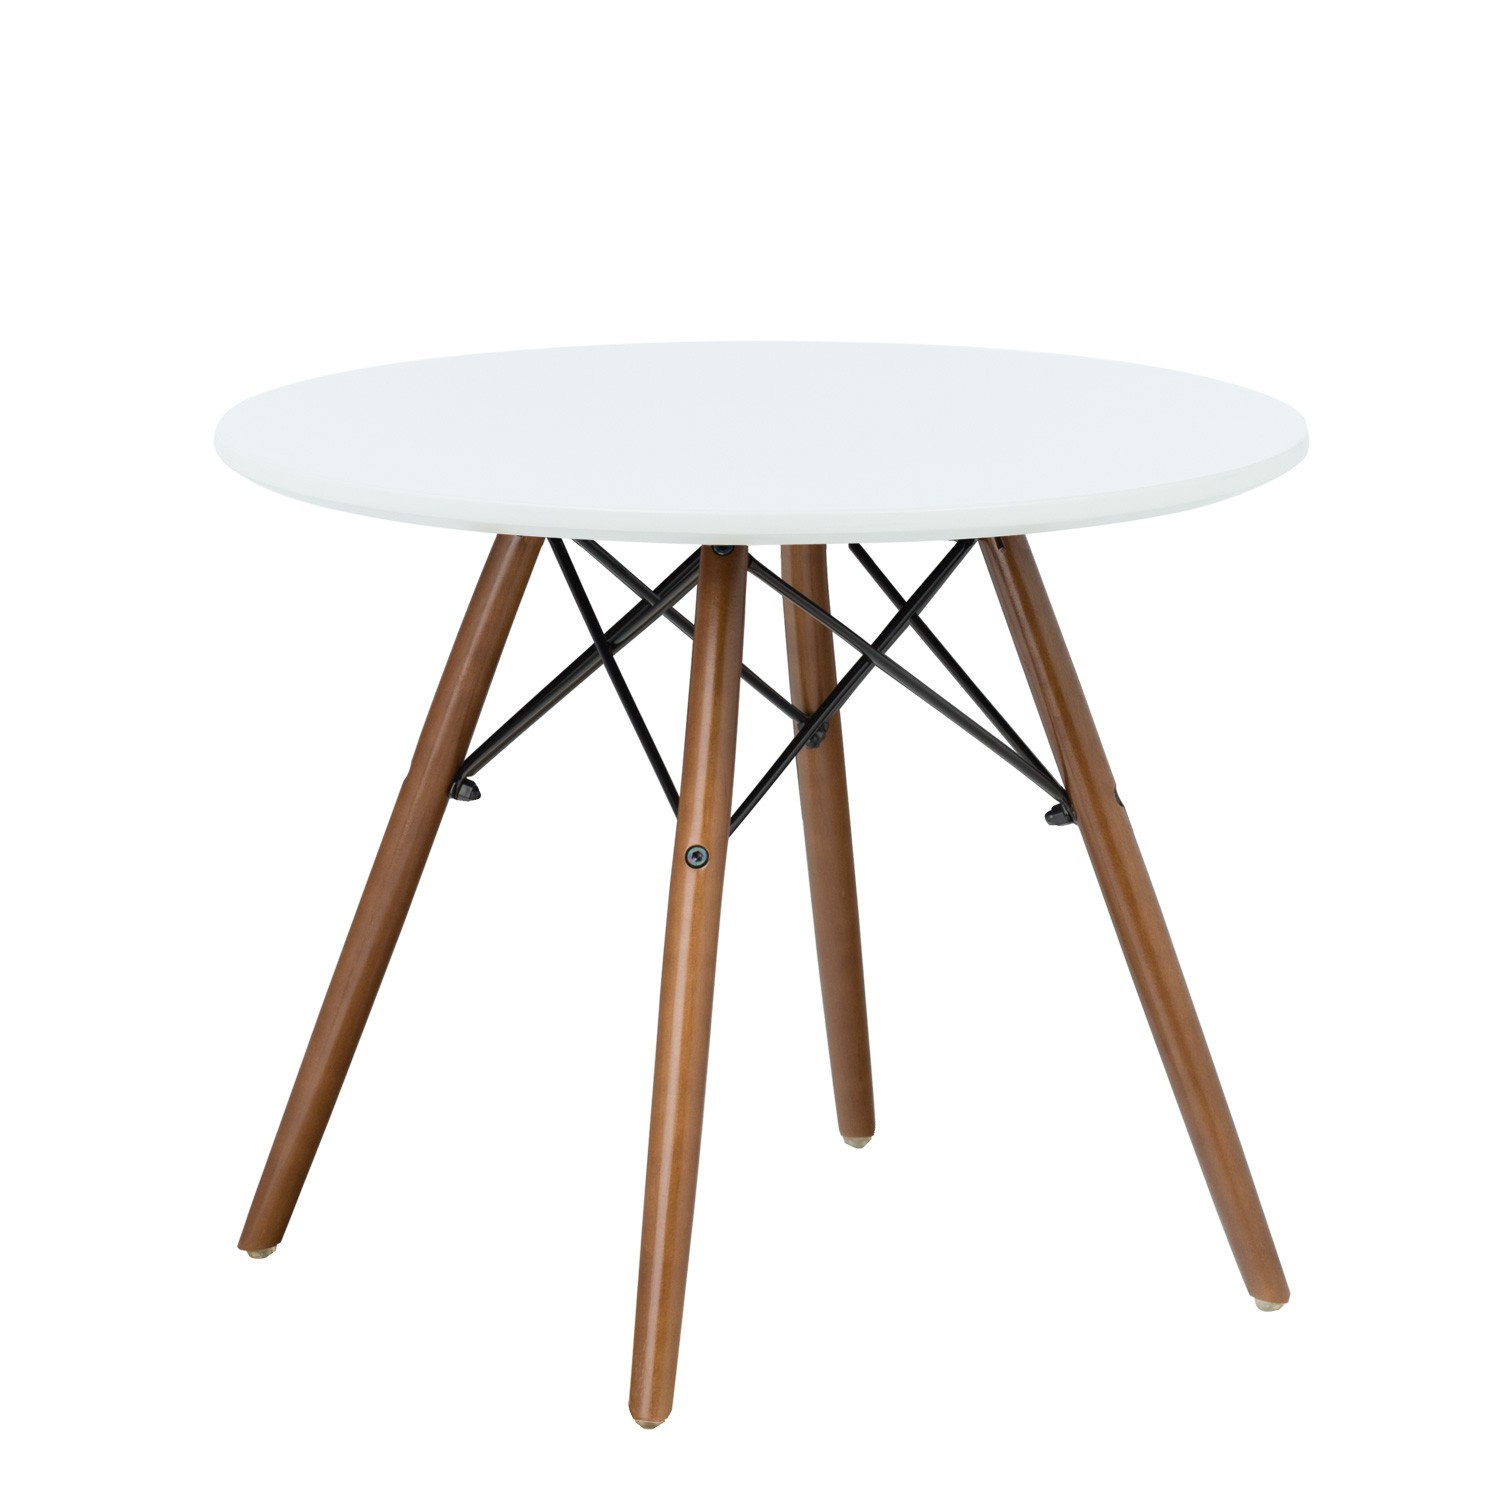 Brich Scand Table [KIDS!], gallery image 1